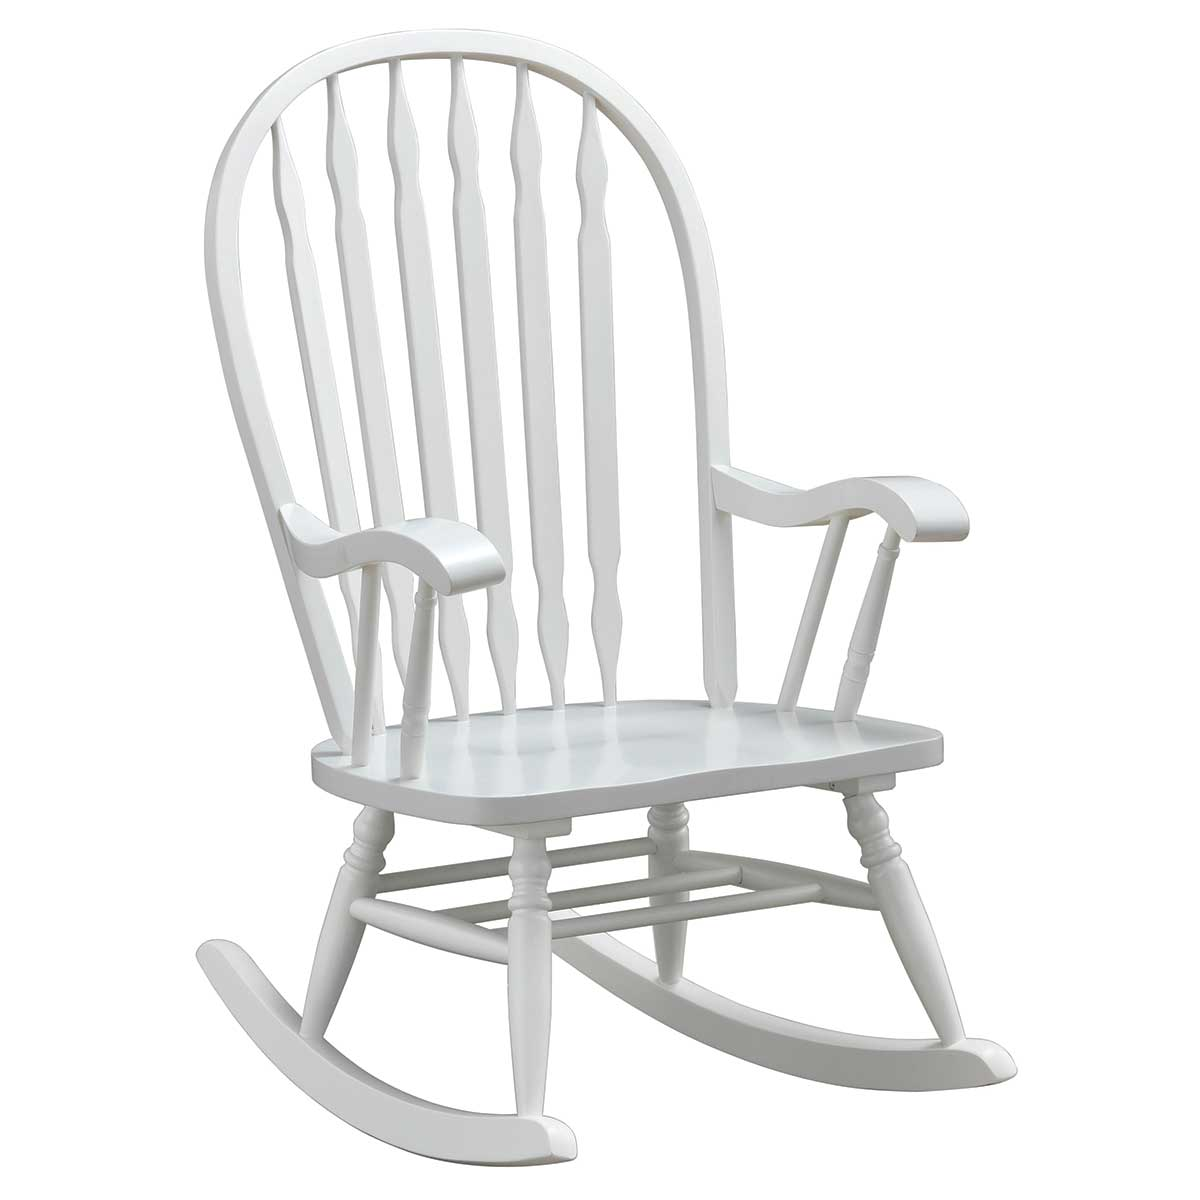 Wondrous White Classic Americana Style Windsor Rocker Machost Co Dining Chair Design Ideas Machostcouk